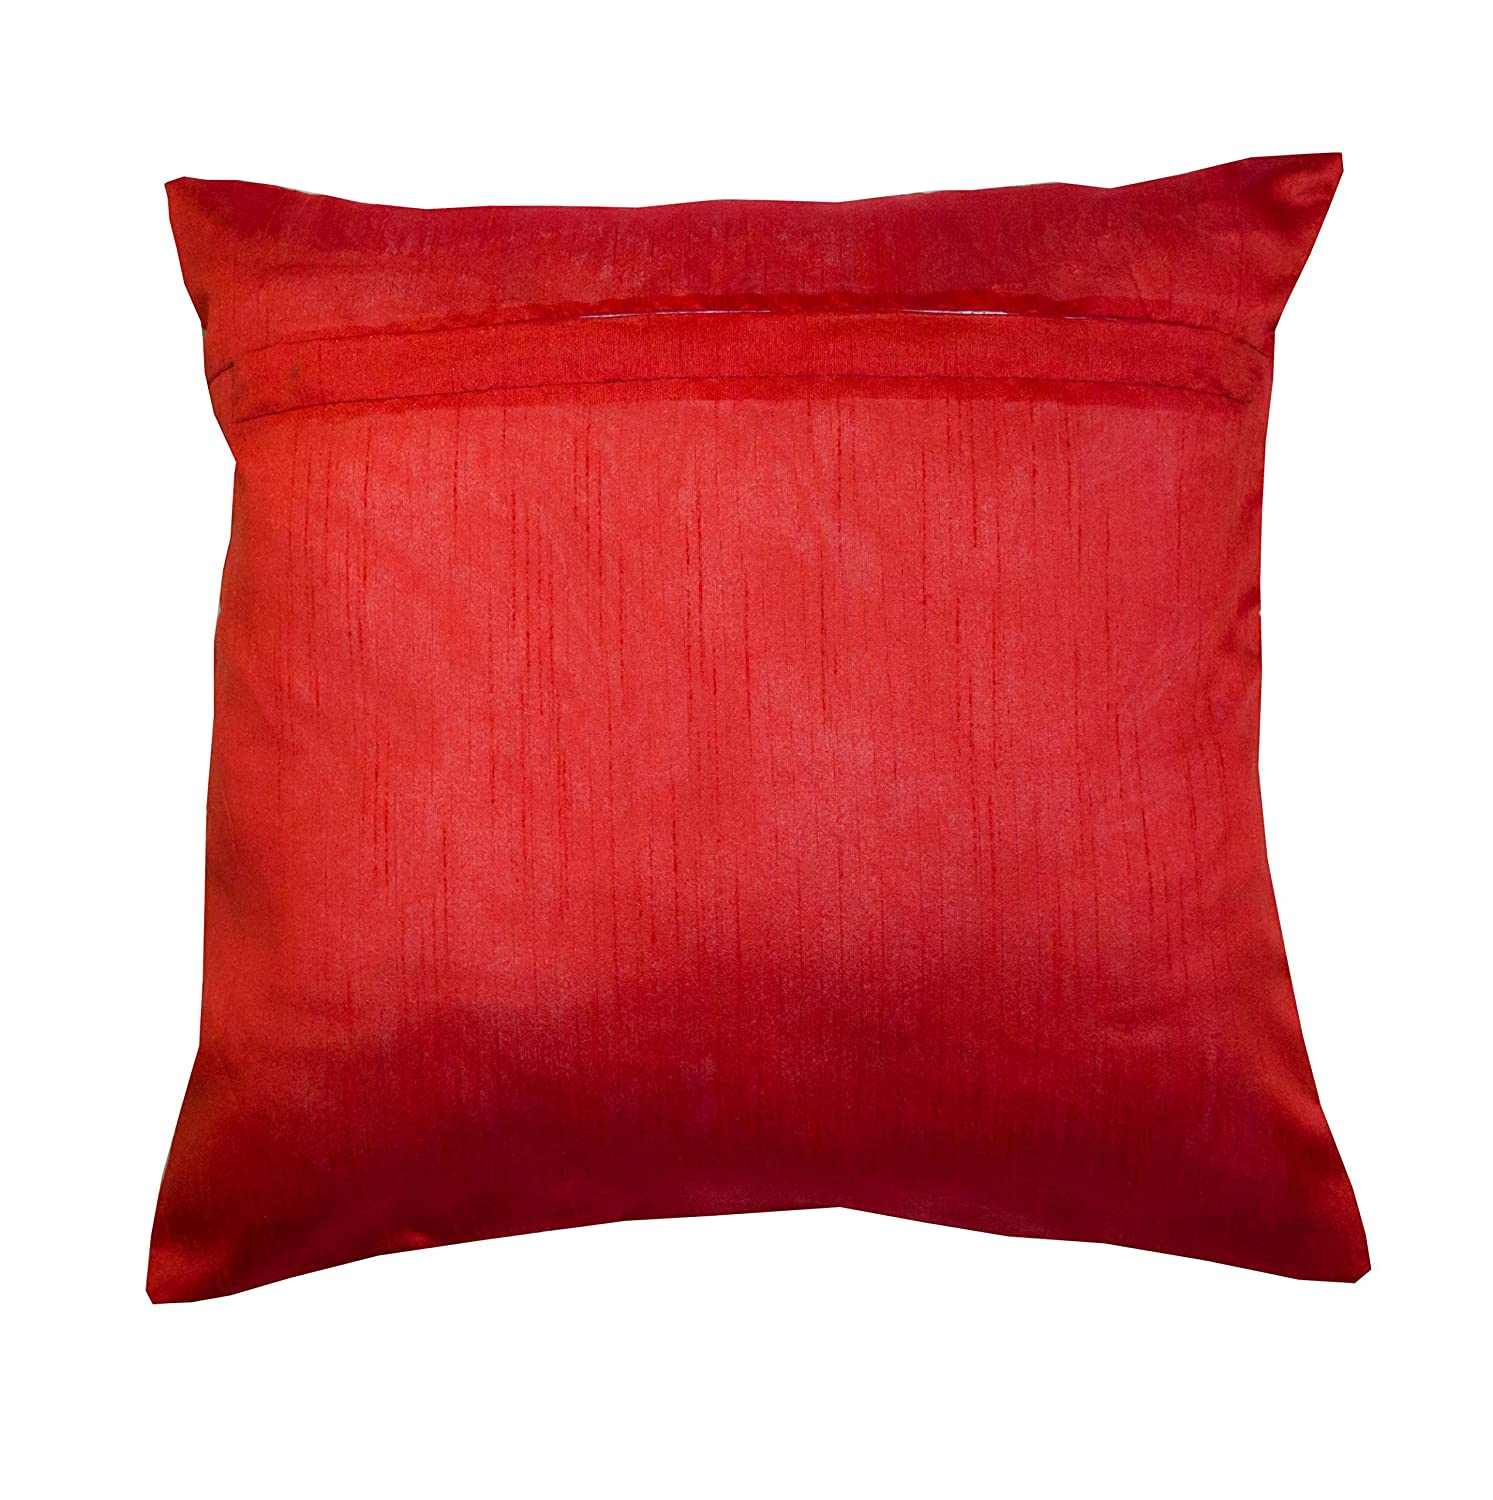 Buy Cushion Covers Multi Cushion Covers 16x16 Set of 5 line